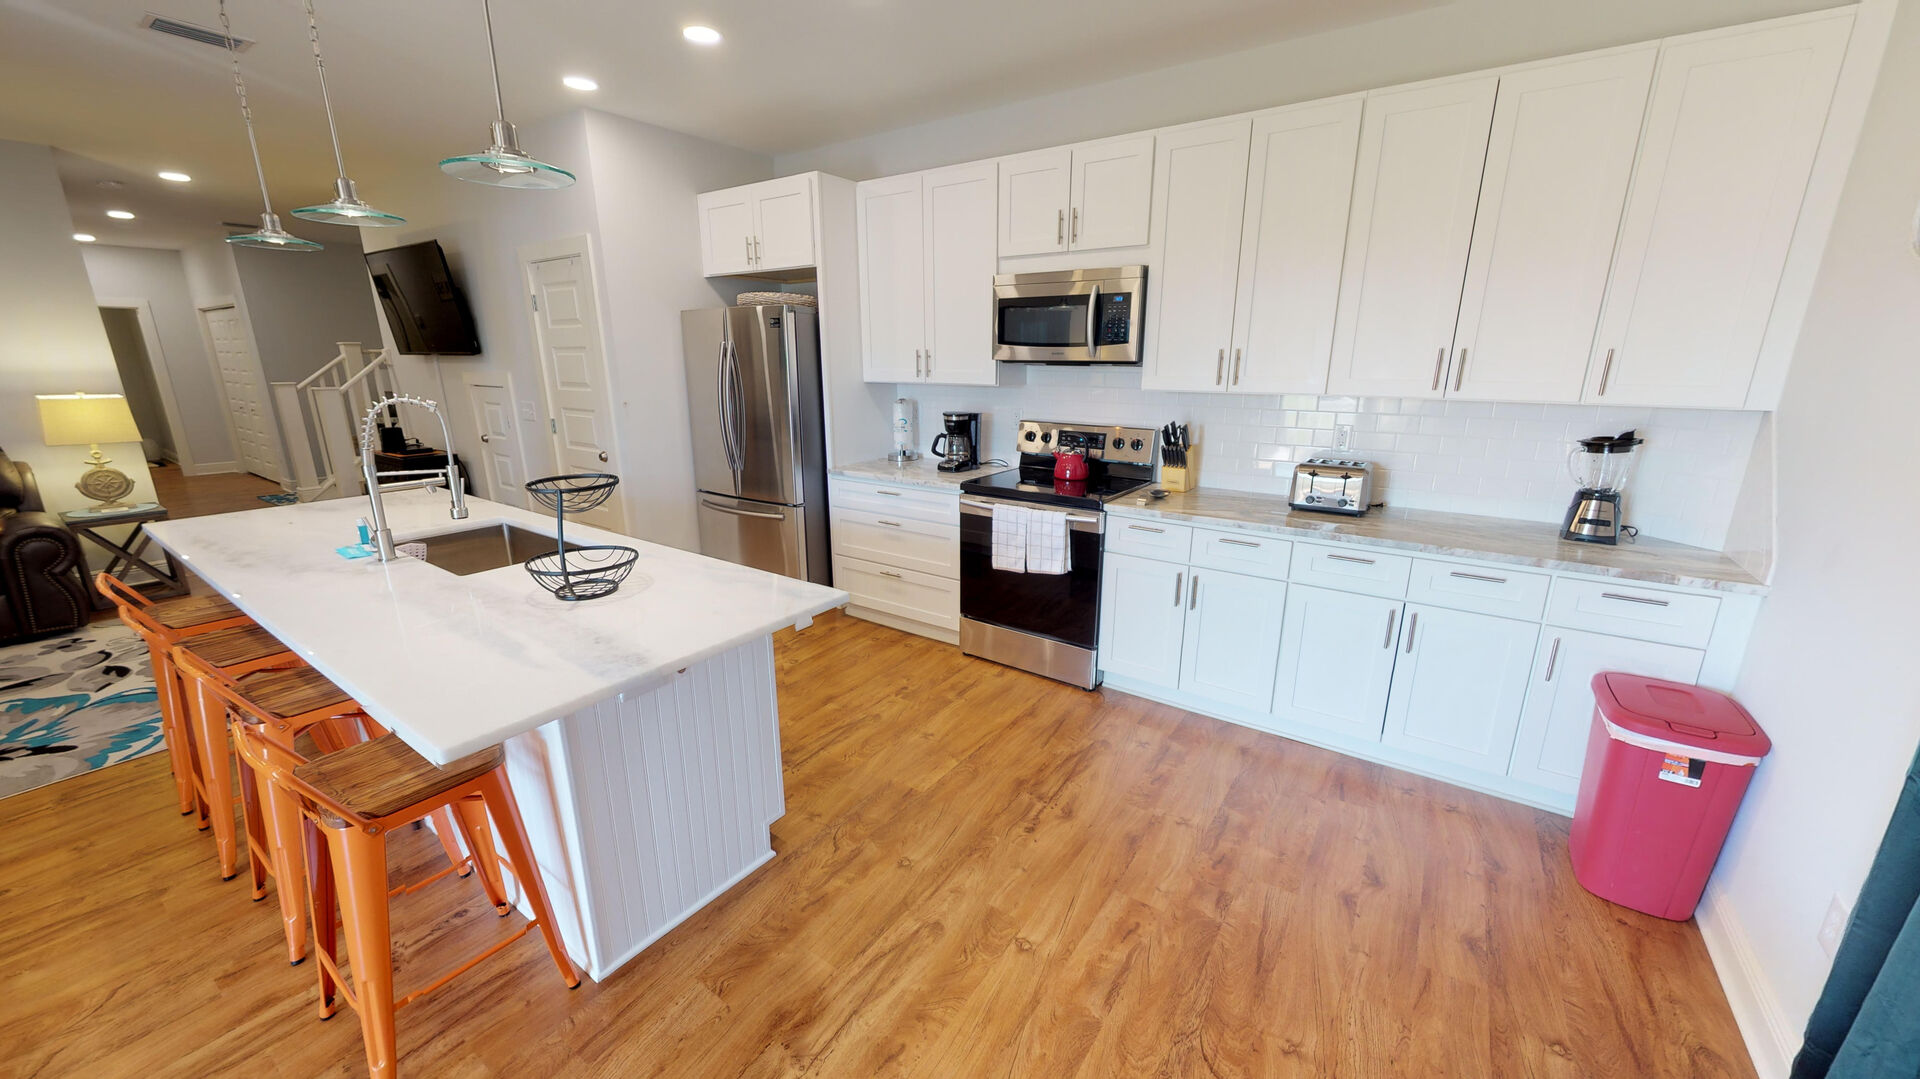 Kitchen with Island, Refrigerator, Microwave, Toaster, and Ceiling Lamps.